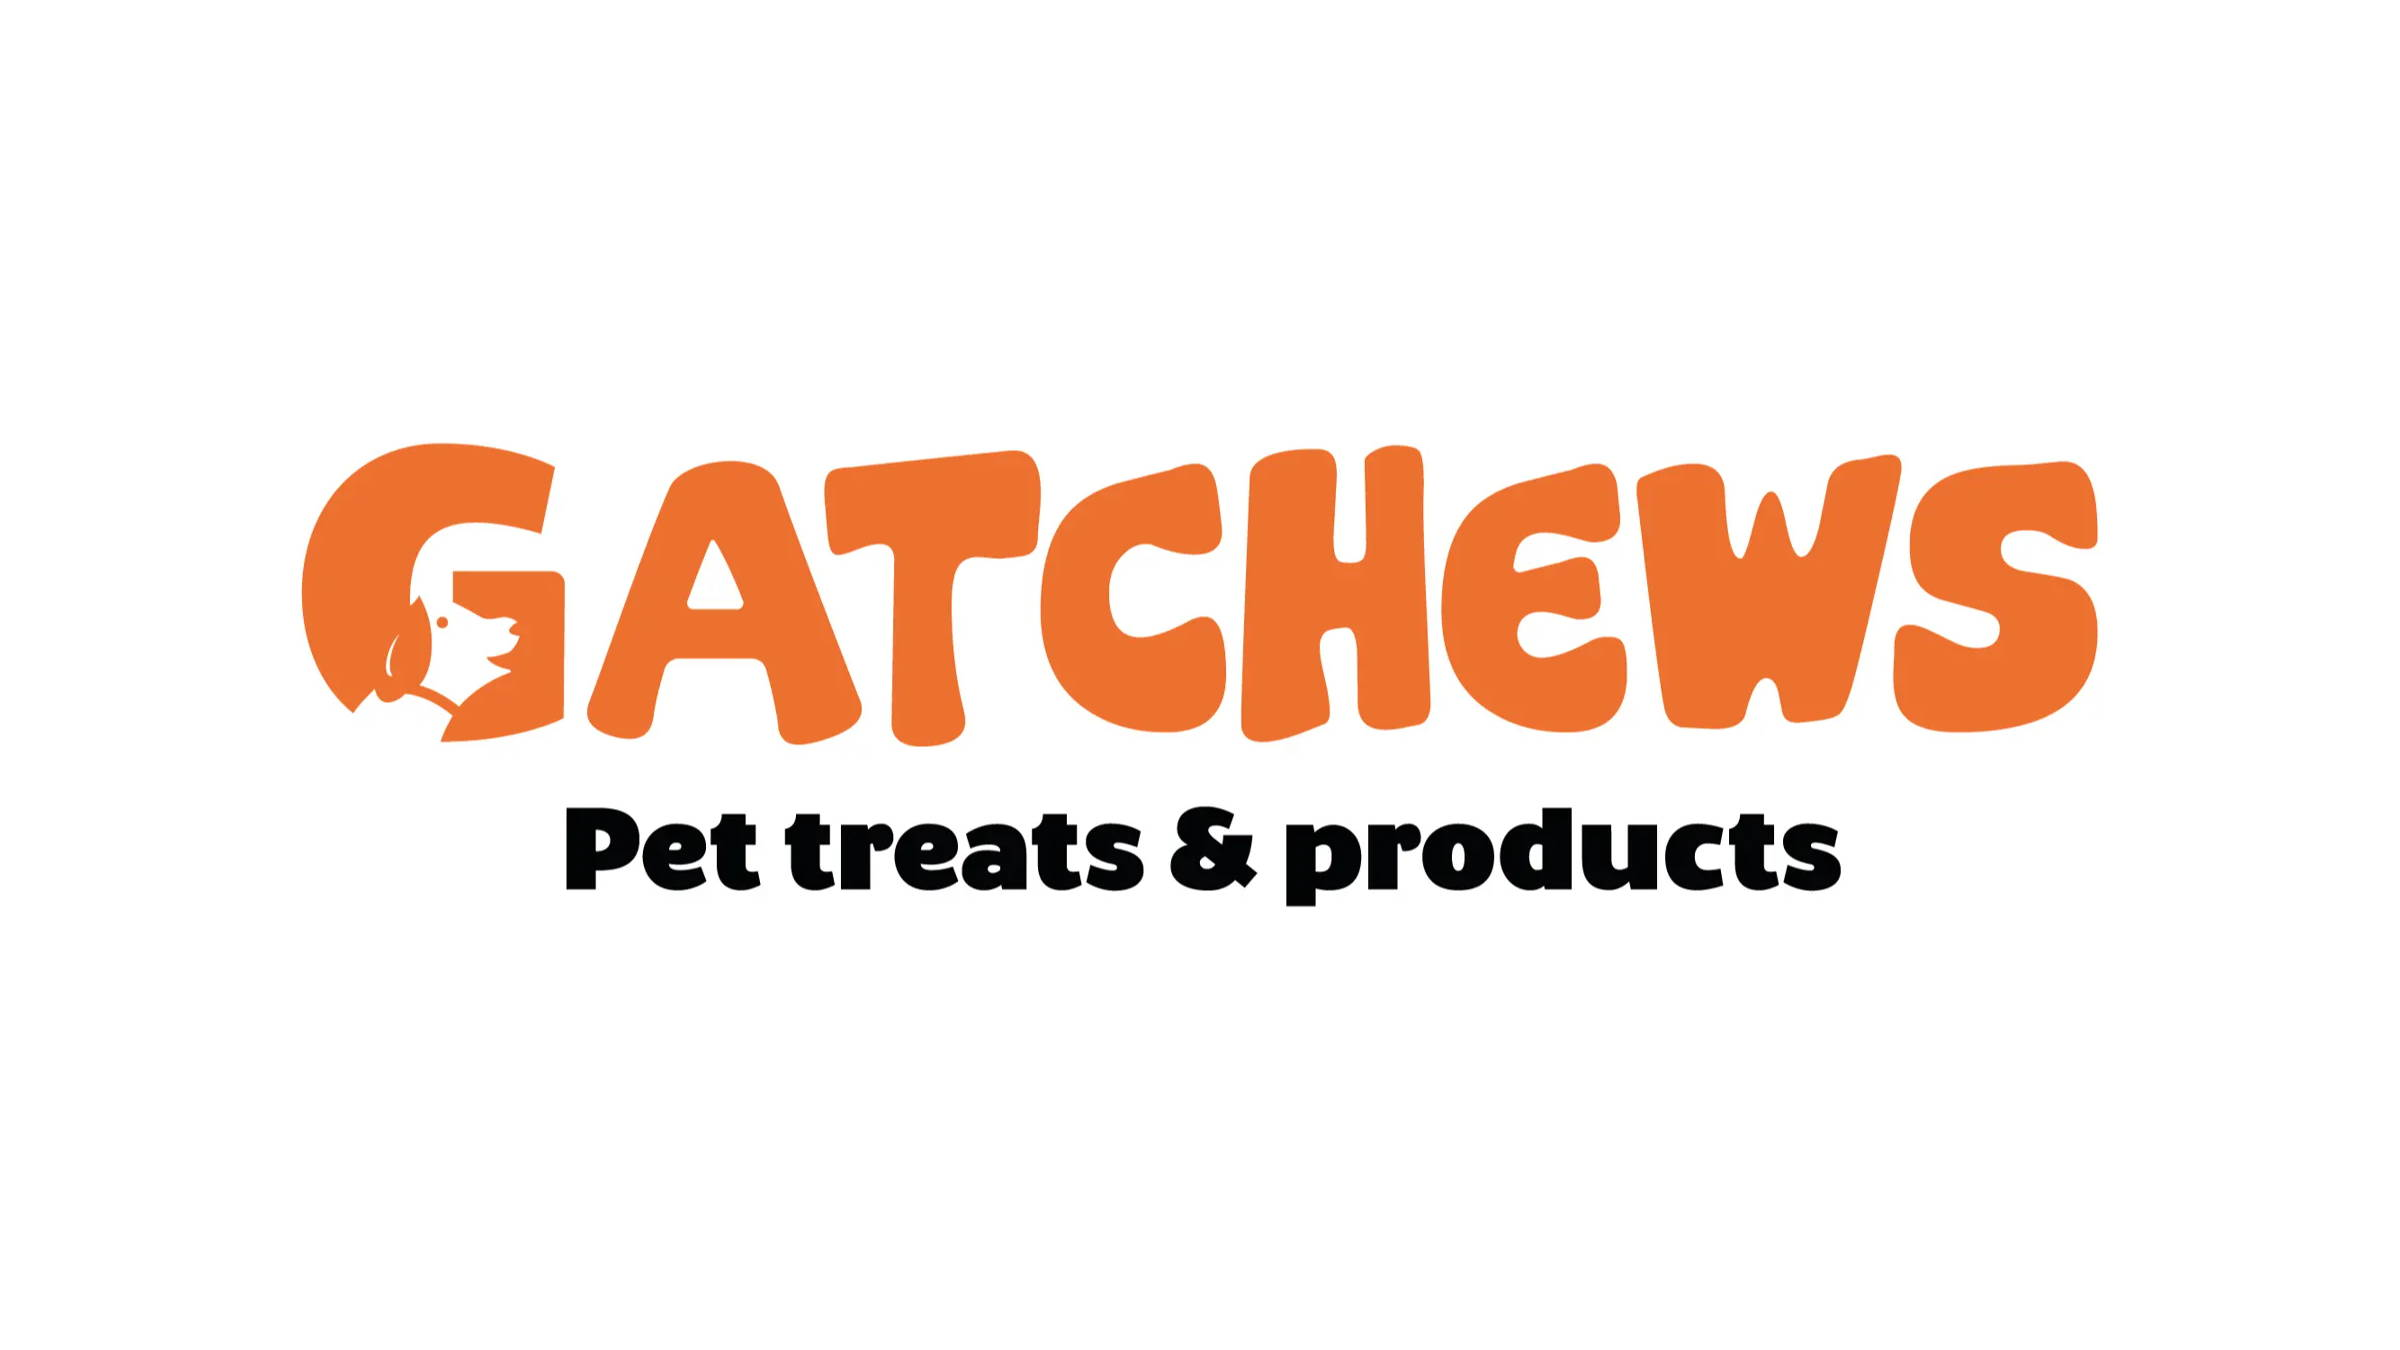 Gatchews pet treats & products for your dog or cat